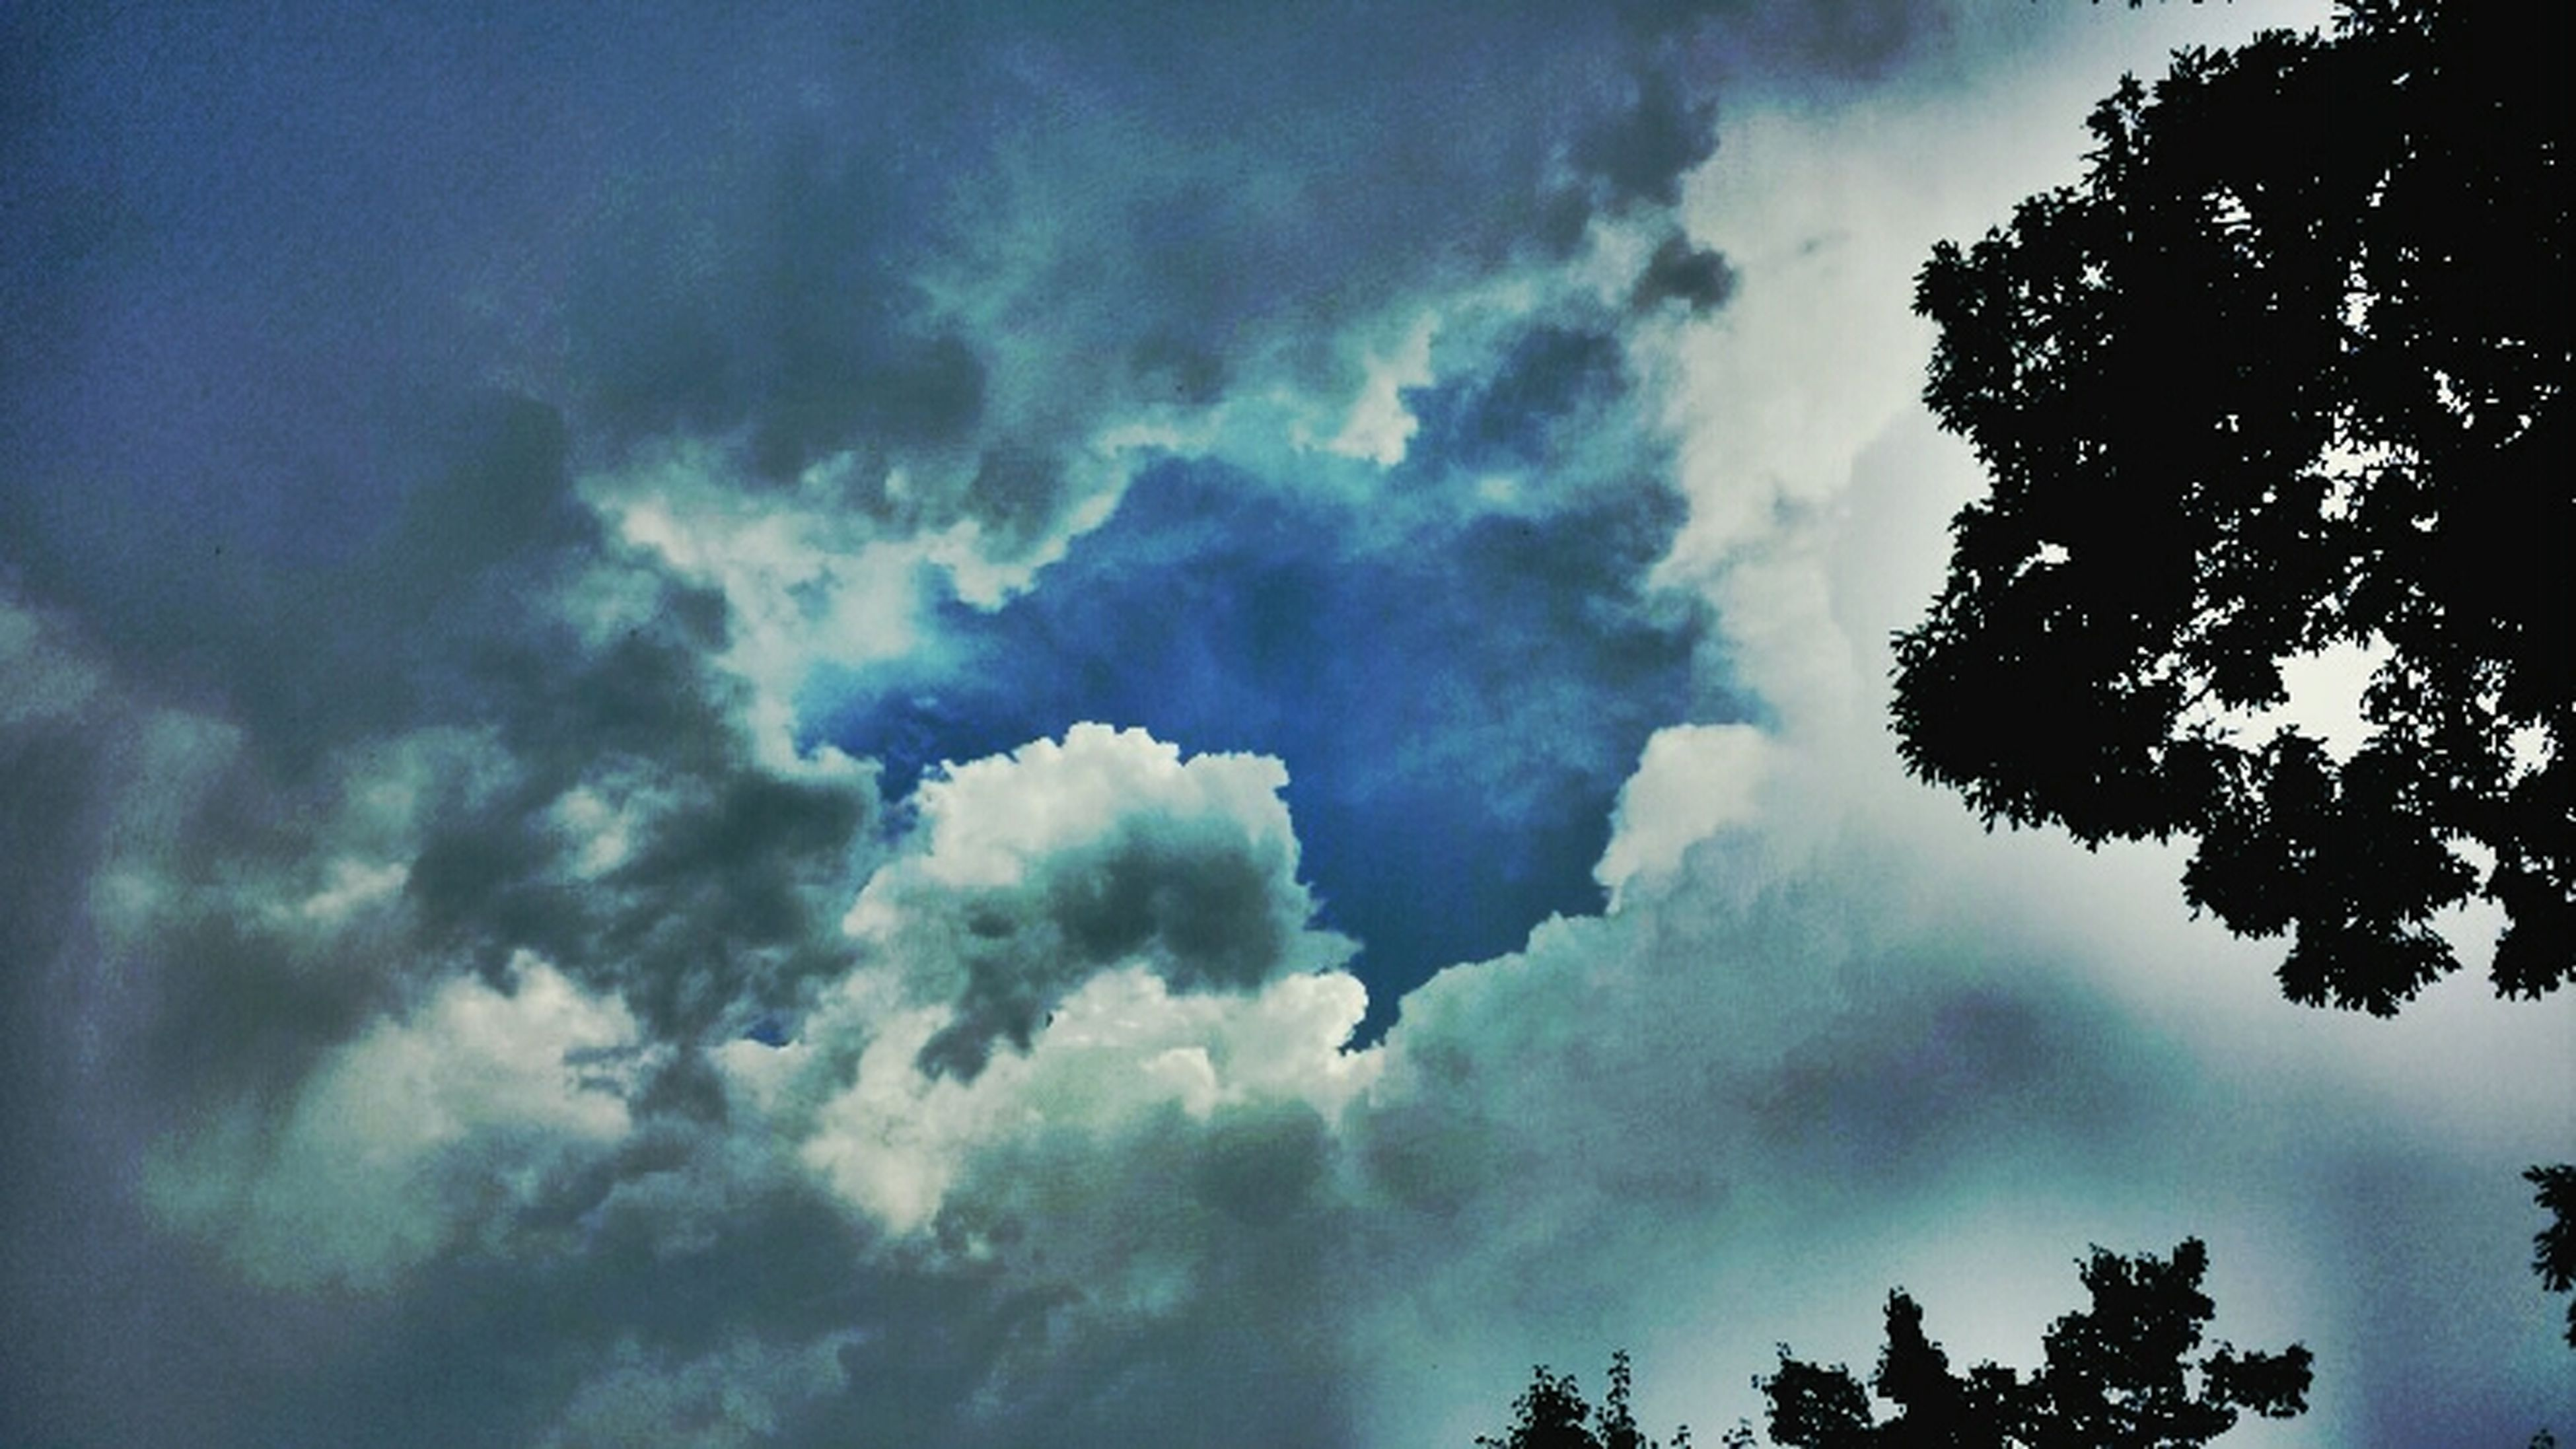 low angle view, sky, tree, cloud - sky, cloudy, beauty in nature, tranquility, silhouette, nature, scenics, cloud, tranquil scene, high section, cloudscape, weather, growth, treetop, blue, overcast, outdoors